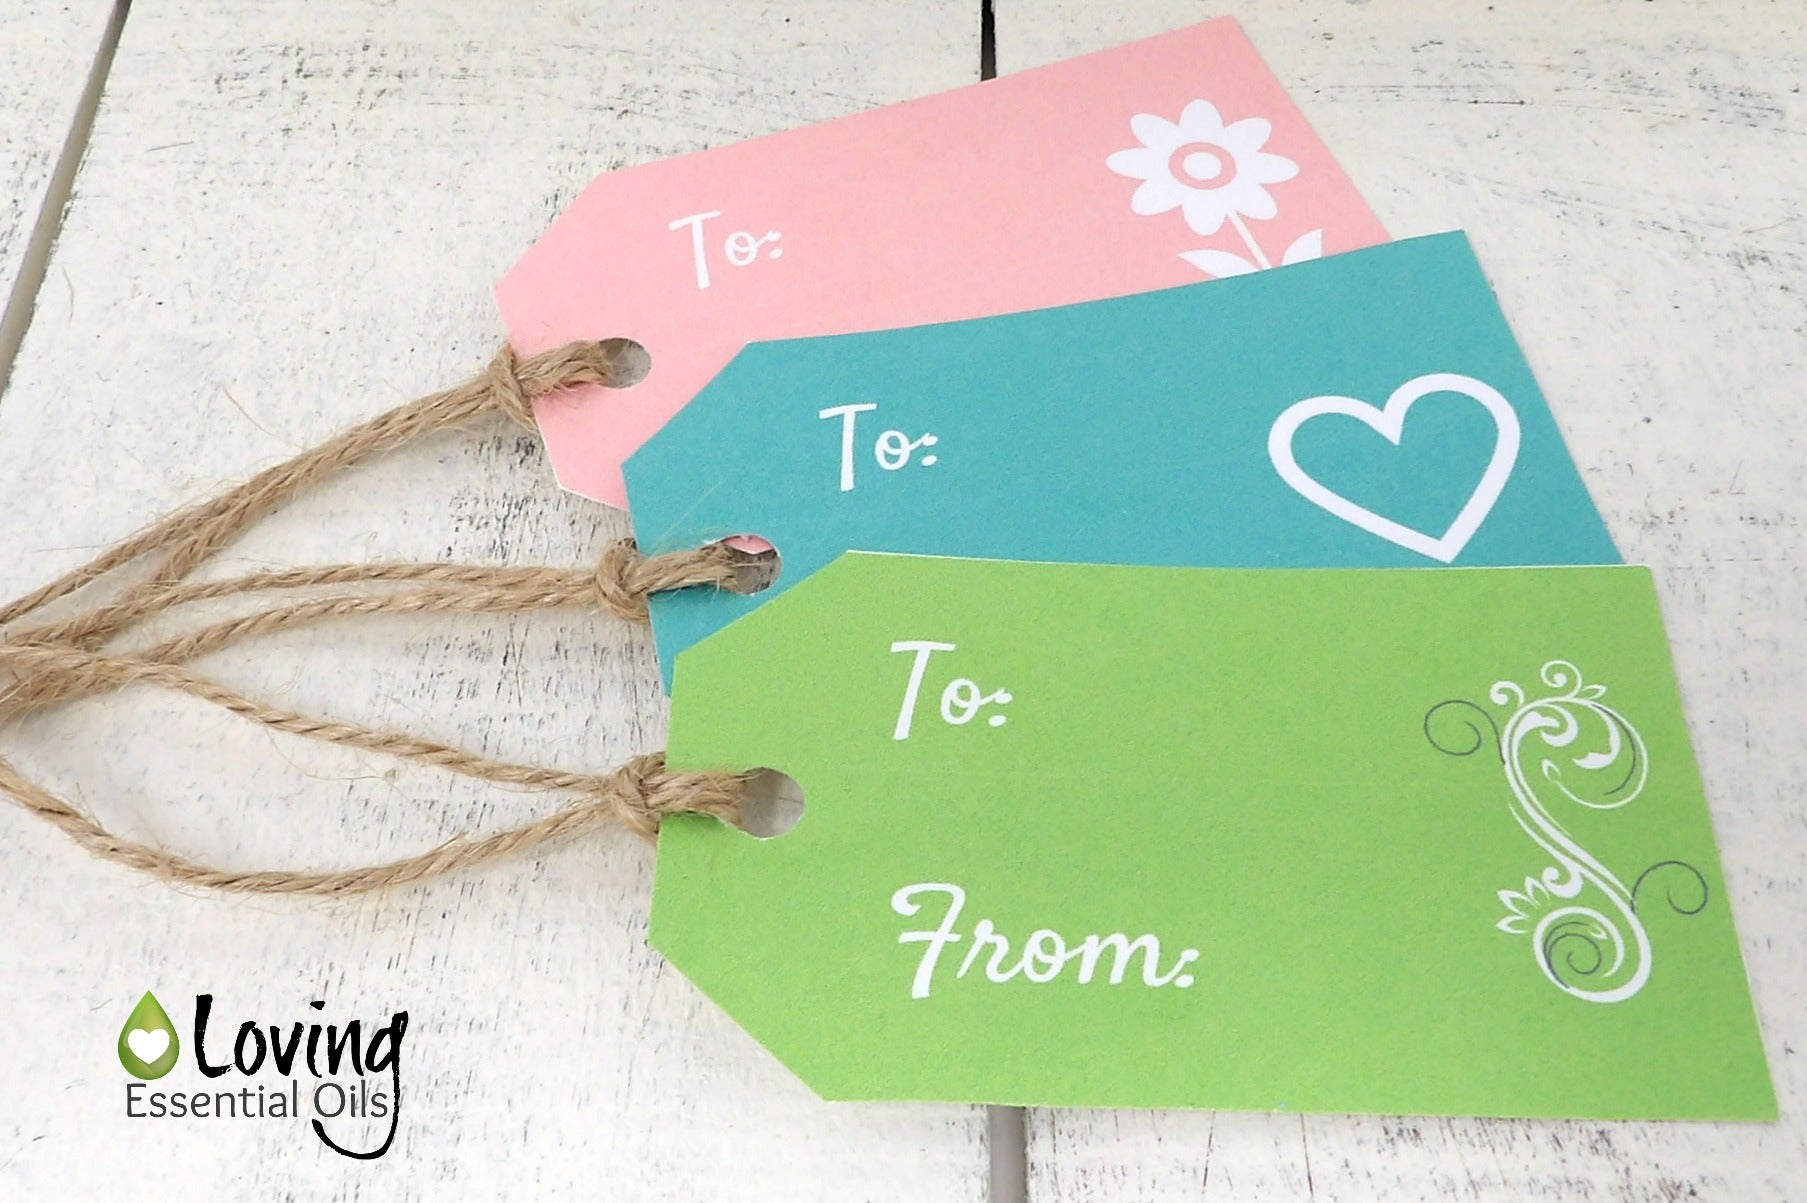 photo regarding Free Printable Blank Gift Tags named 184 Totally free Printable Blank Reward Tags For Do-it-yourself Recipes, Features